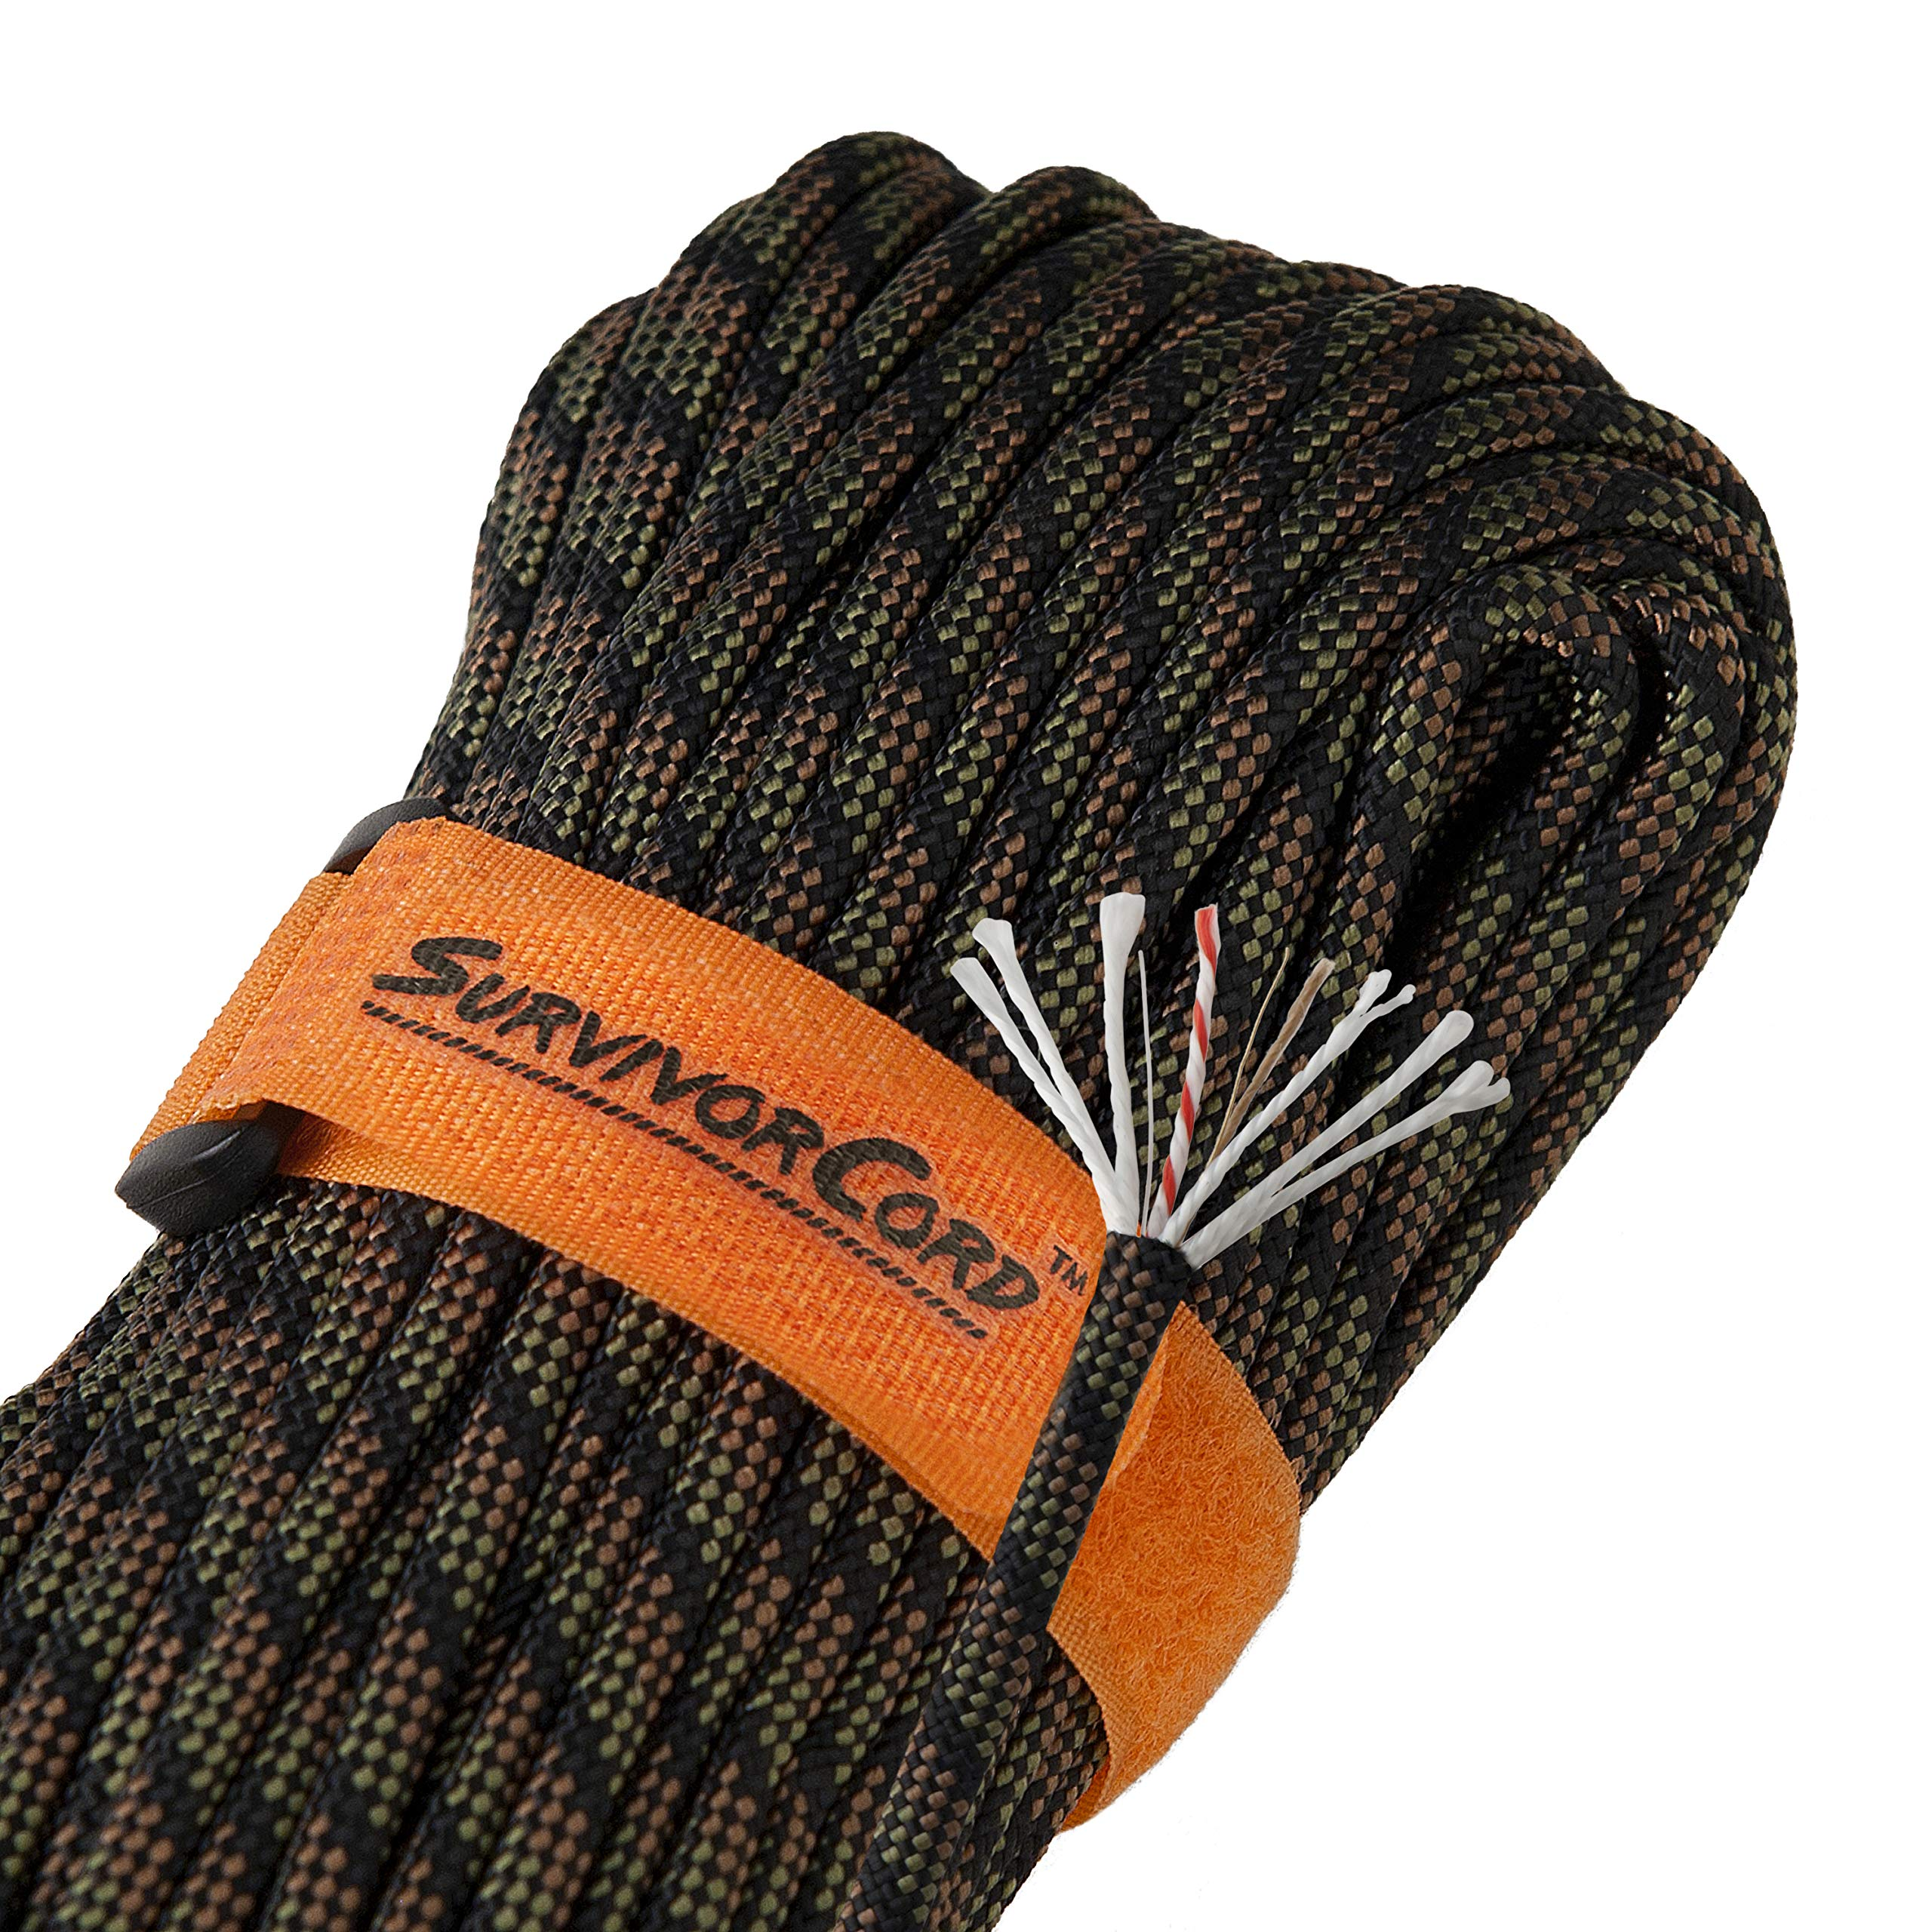 Titan SurvivorCord | DRAGONSCALE | 103 Feet | Patented Military Type III 550 Paracord/Parachute Cord (3/16'' Diameter) with Integrated Fishing Line, Fire-Starter, and Utility Wire.